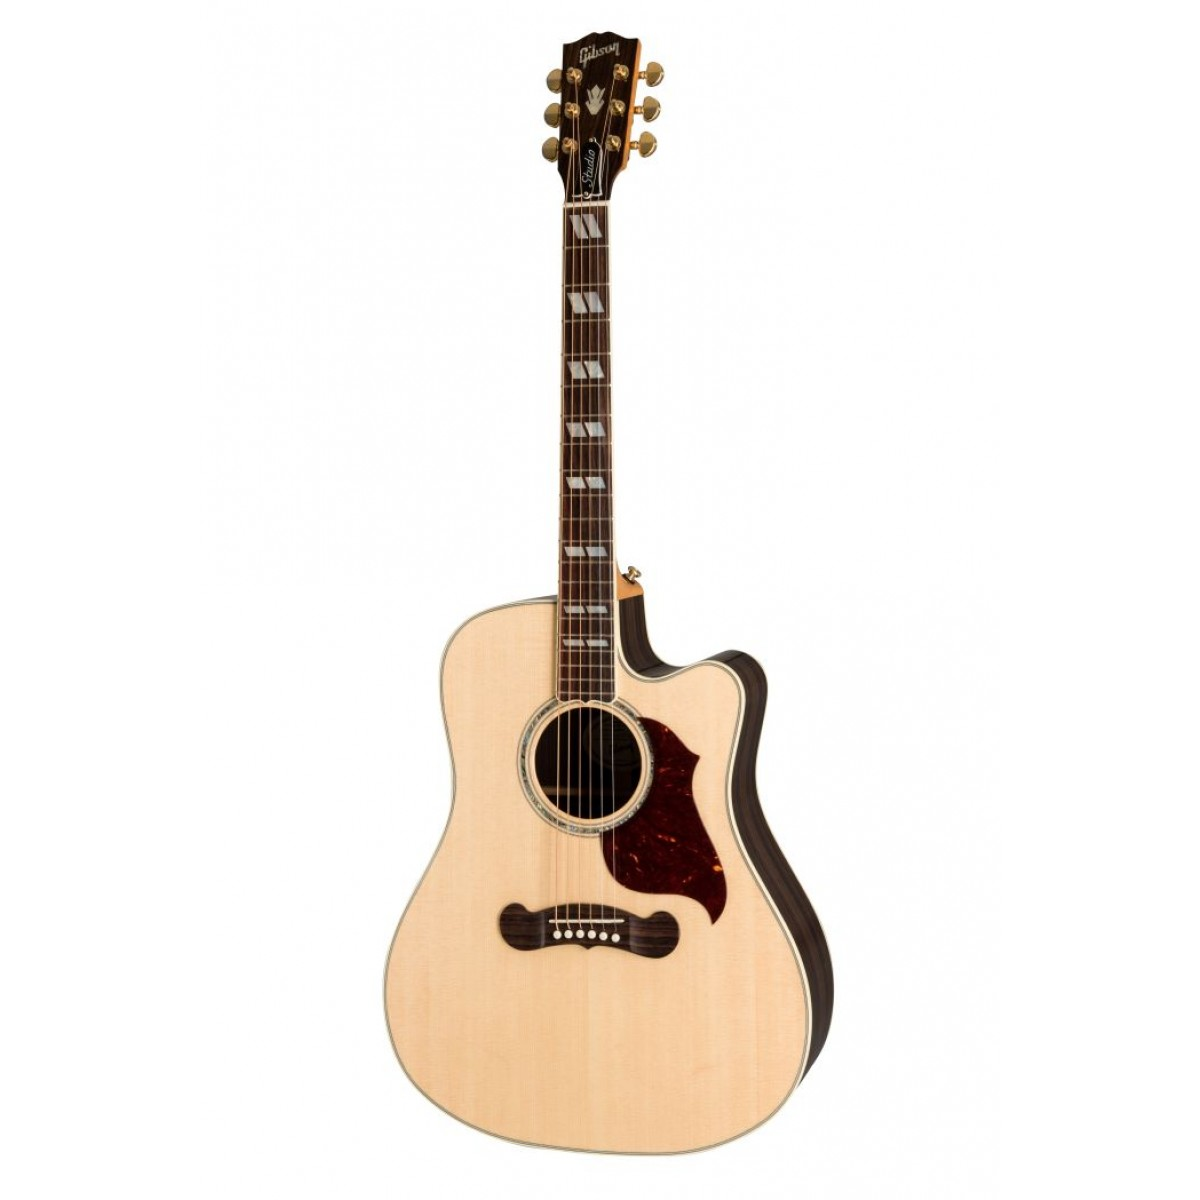 gibson songwriter cutaway antique natural 2019 acoustic guitar. Black Bedroom Furniture Sets. Home Design Ideas